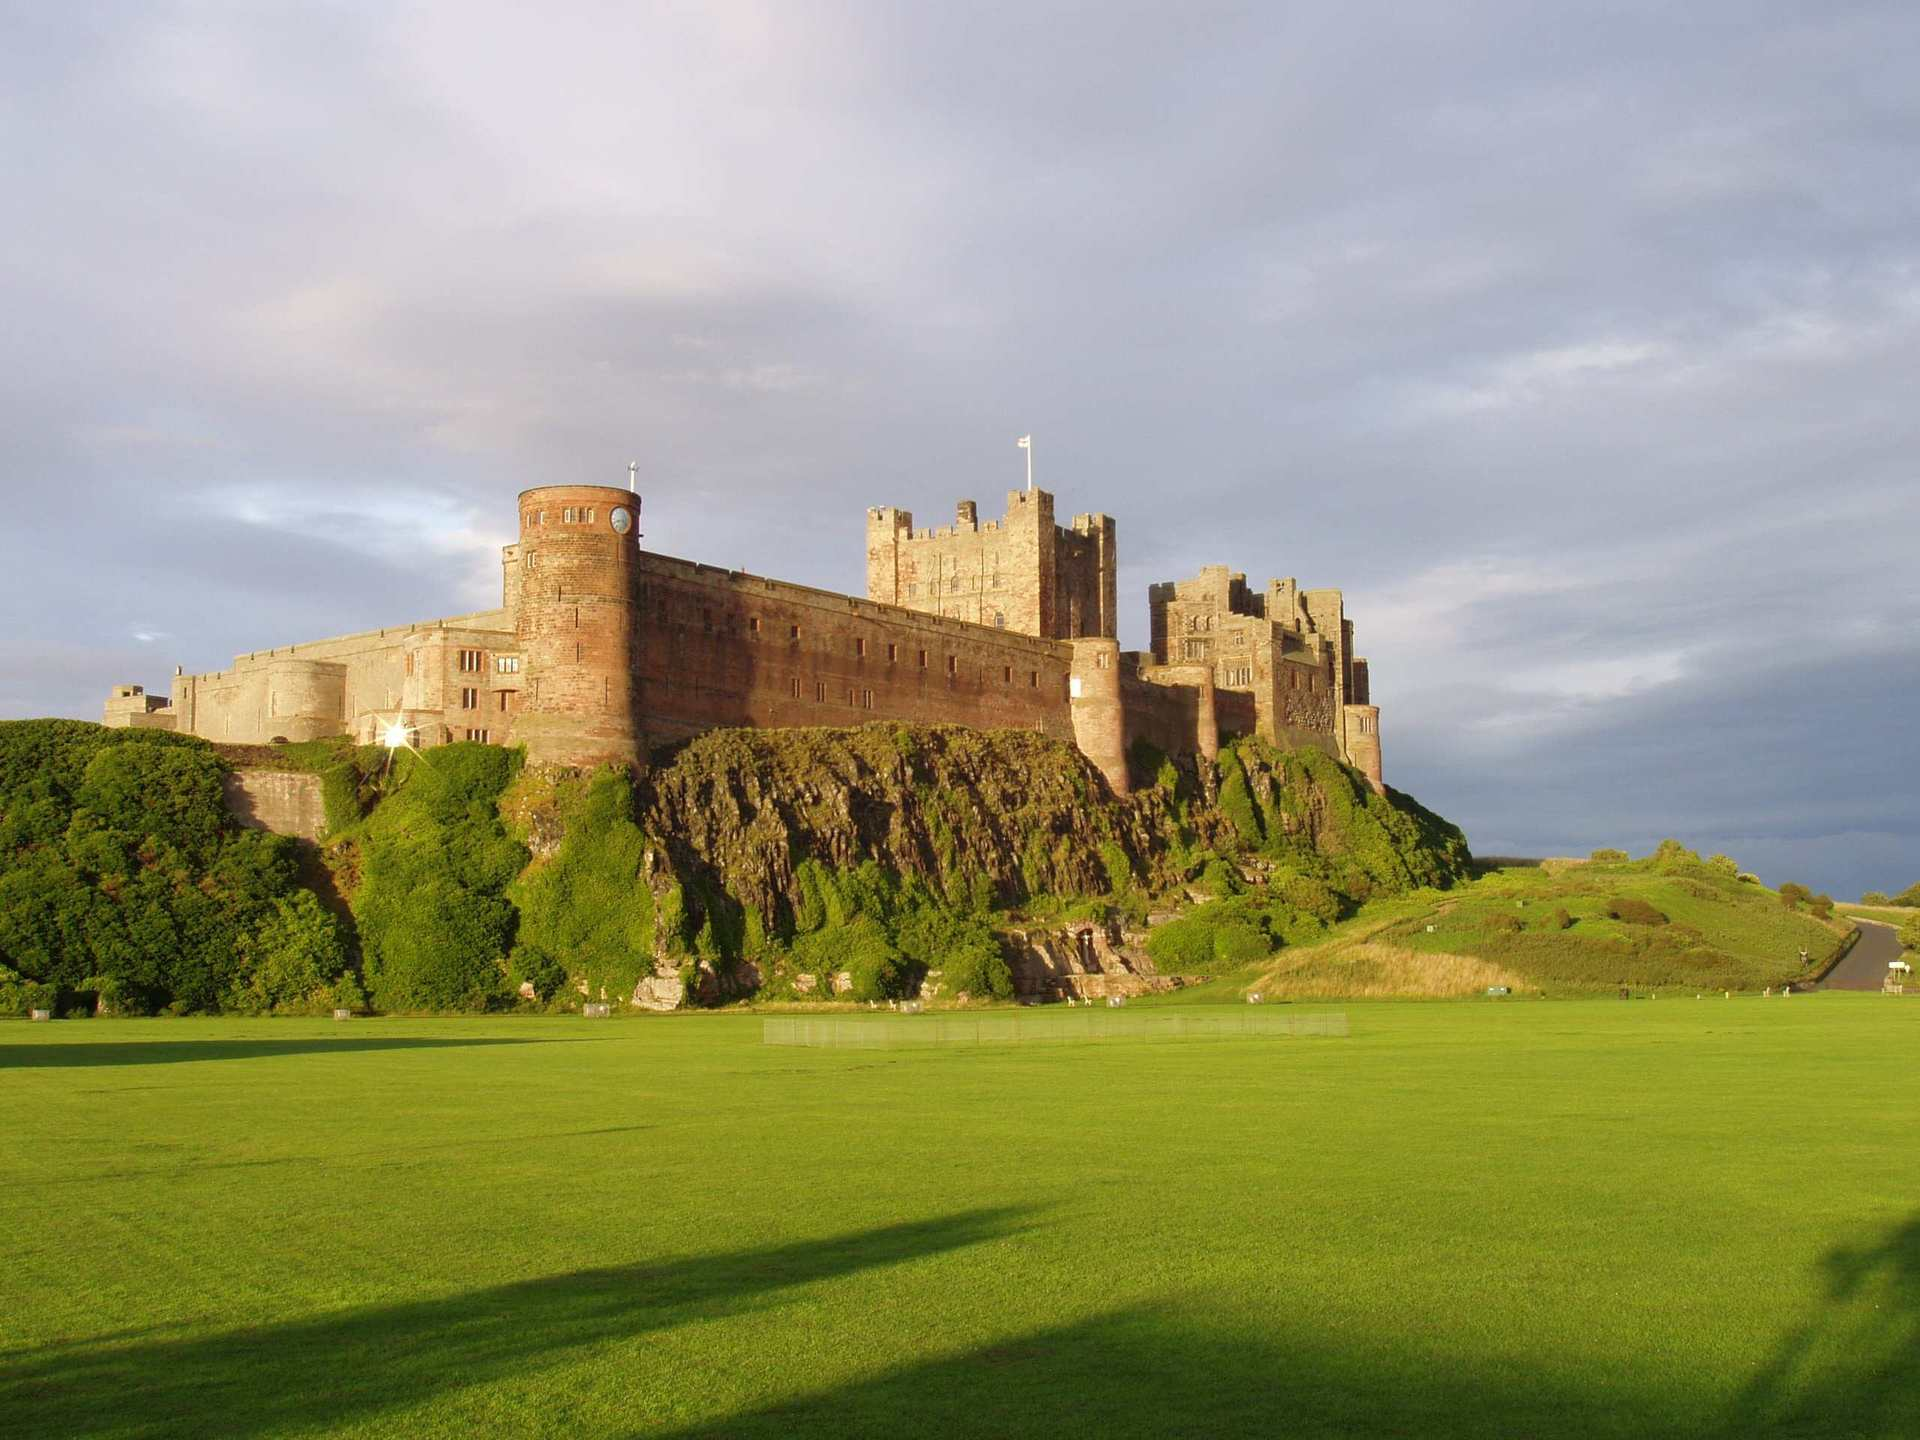 bamburgh castle - photo #20